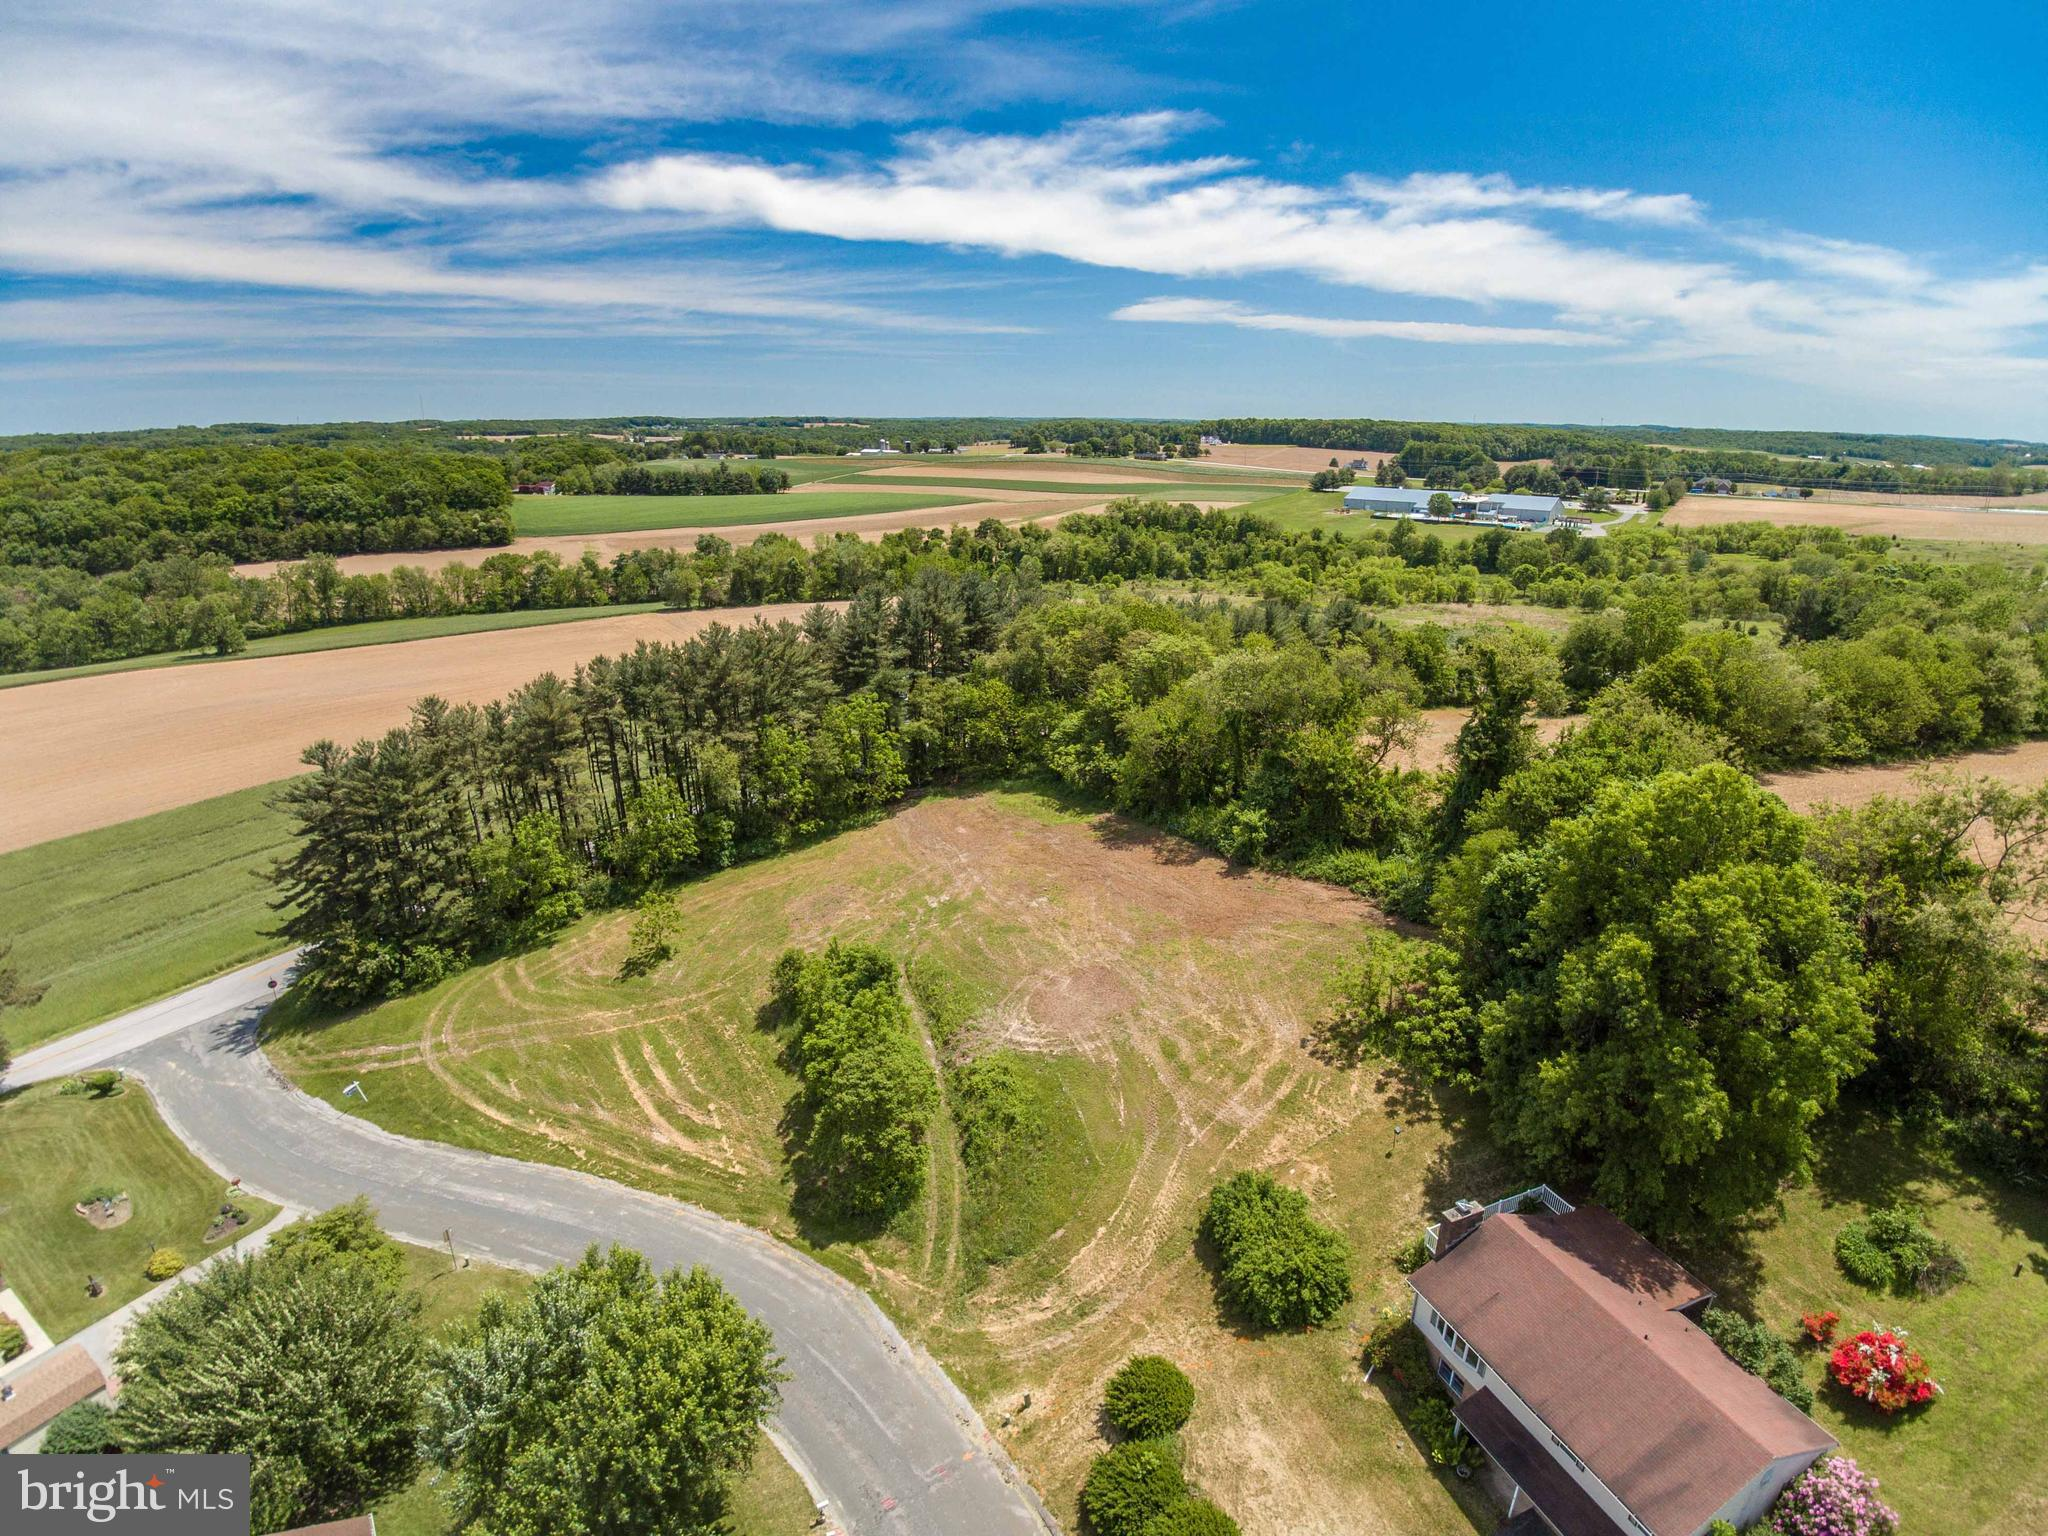 *REDUCED!!!*Welcome to this Beautiful and Ready To Build 1.4 Acre Lot with Country Views in an established neighborhood and close to all Hampstead amenities*Well and Perc Approved*Bring your plans and builder!!!Priced below assessed value!!!